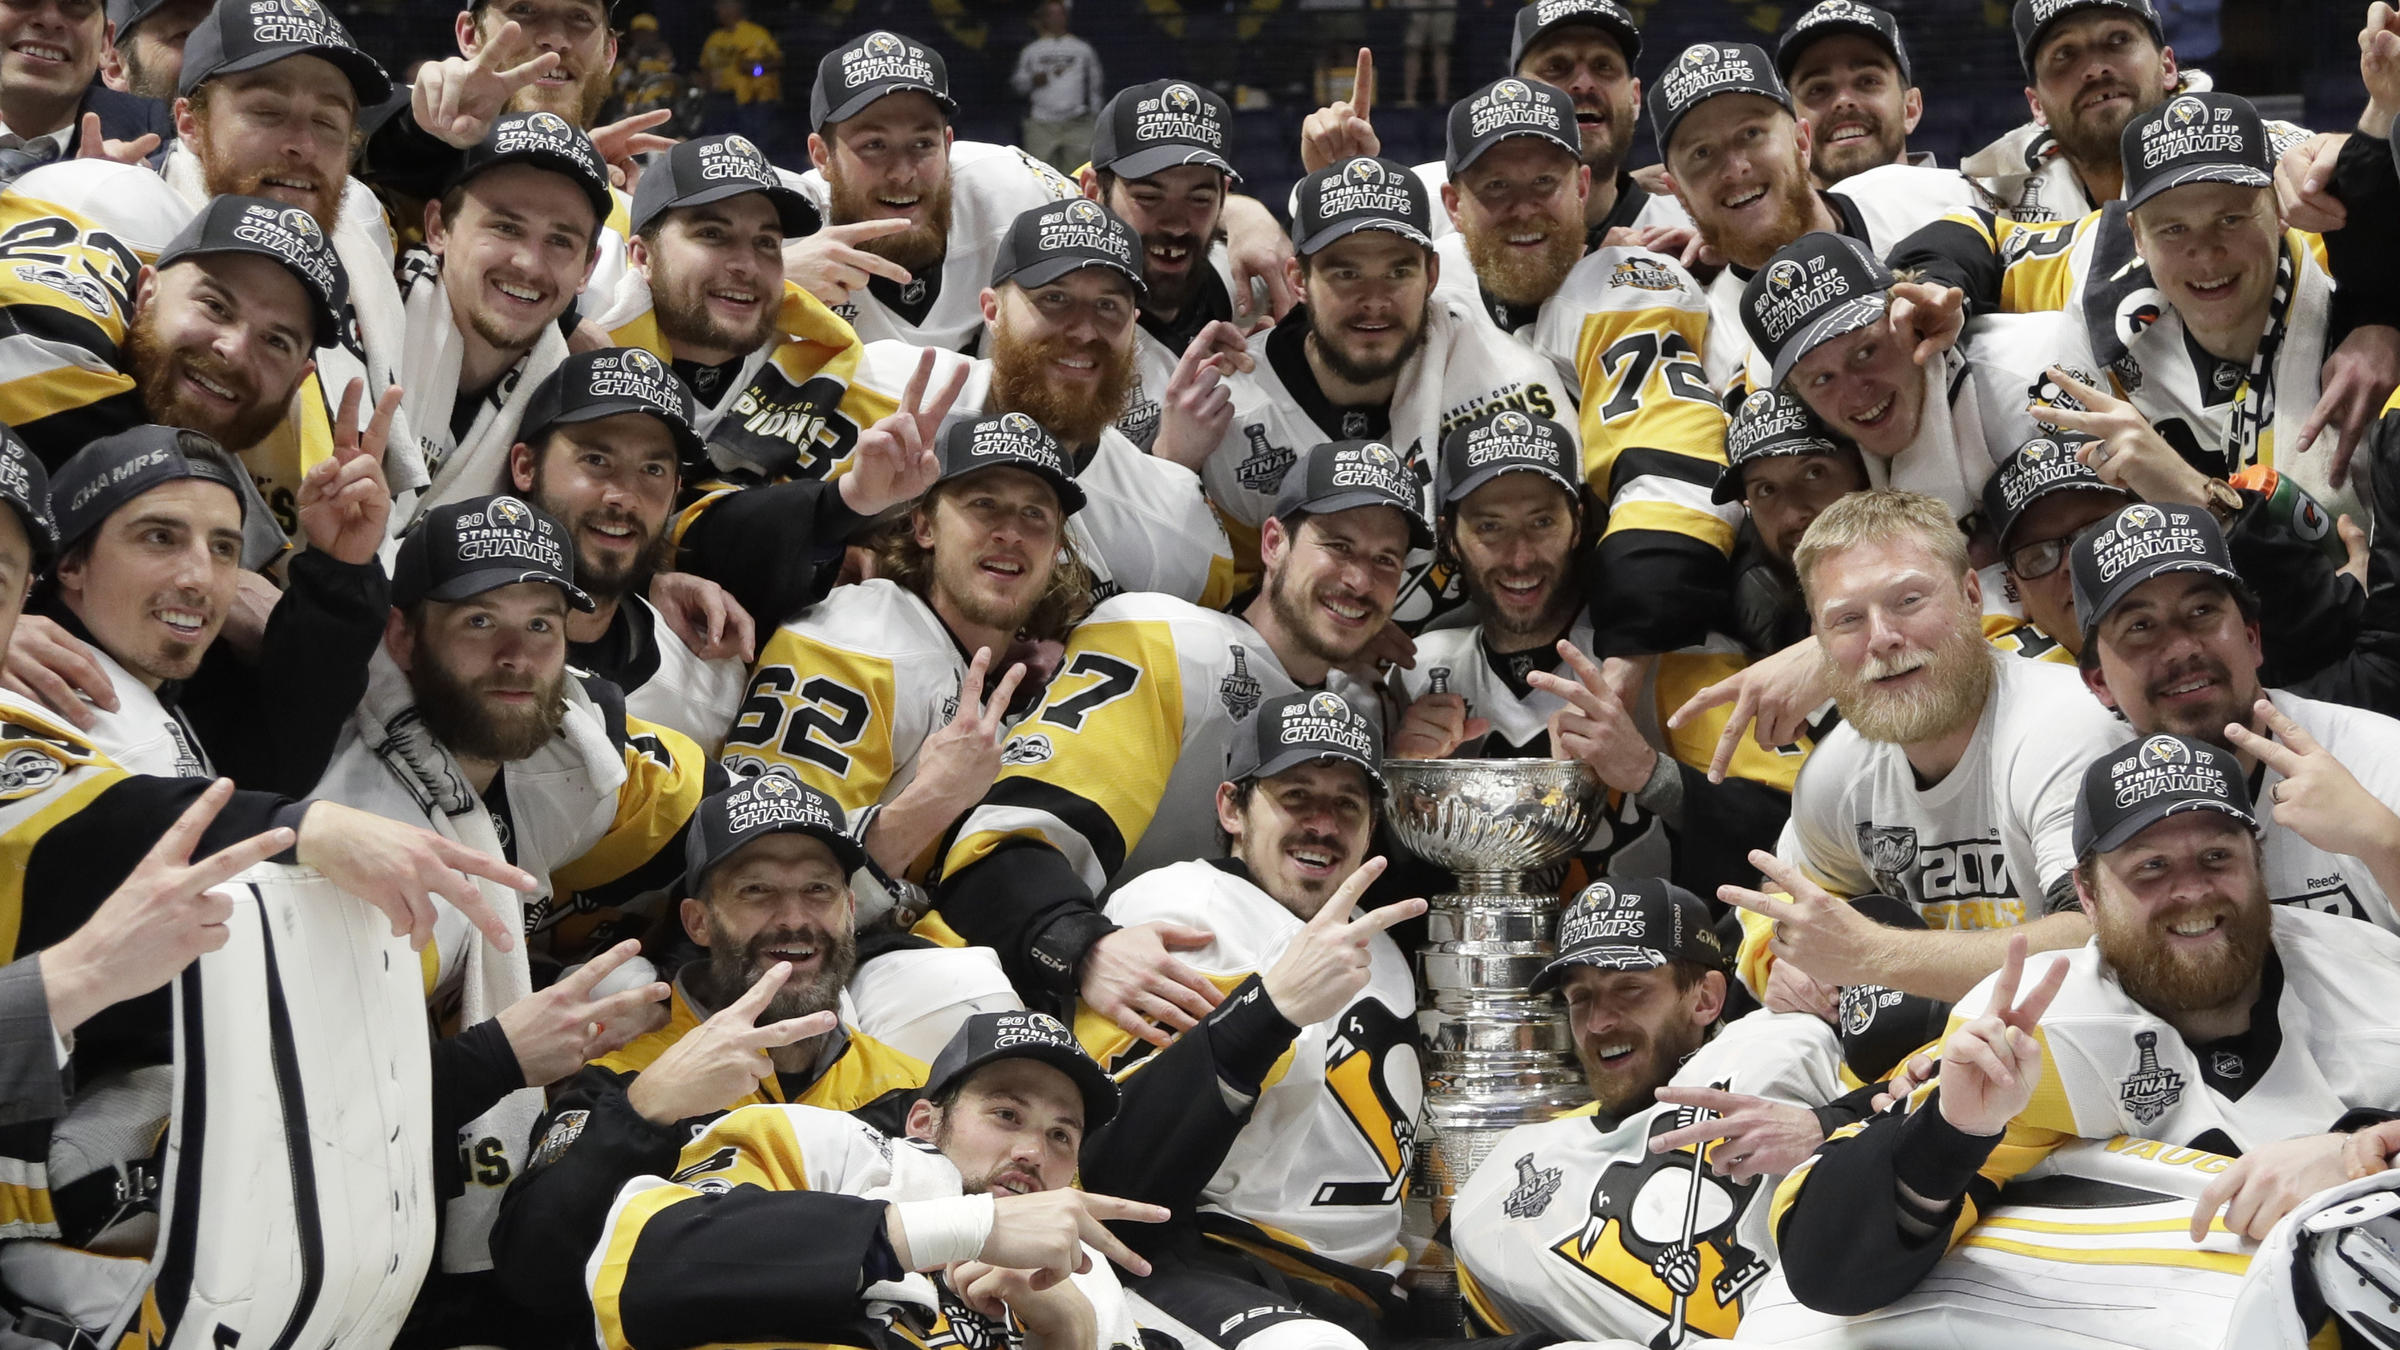 6ff12c701 Pittsburgh Penguins players celebrate Sunday after defeating the Nashville  Predators 2-0 in Game 6 of the NHL Stanley Cup Final in Nashville